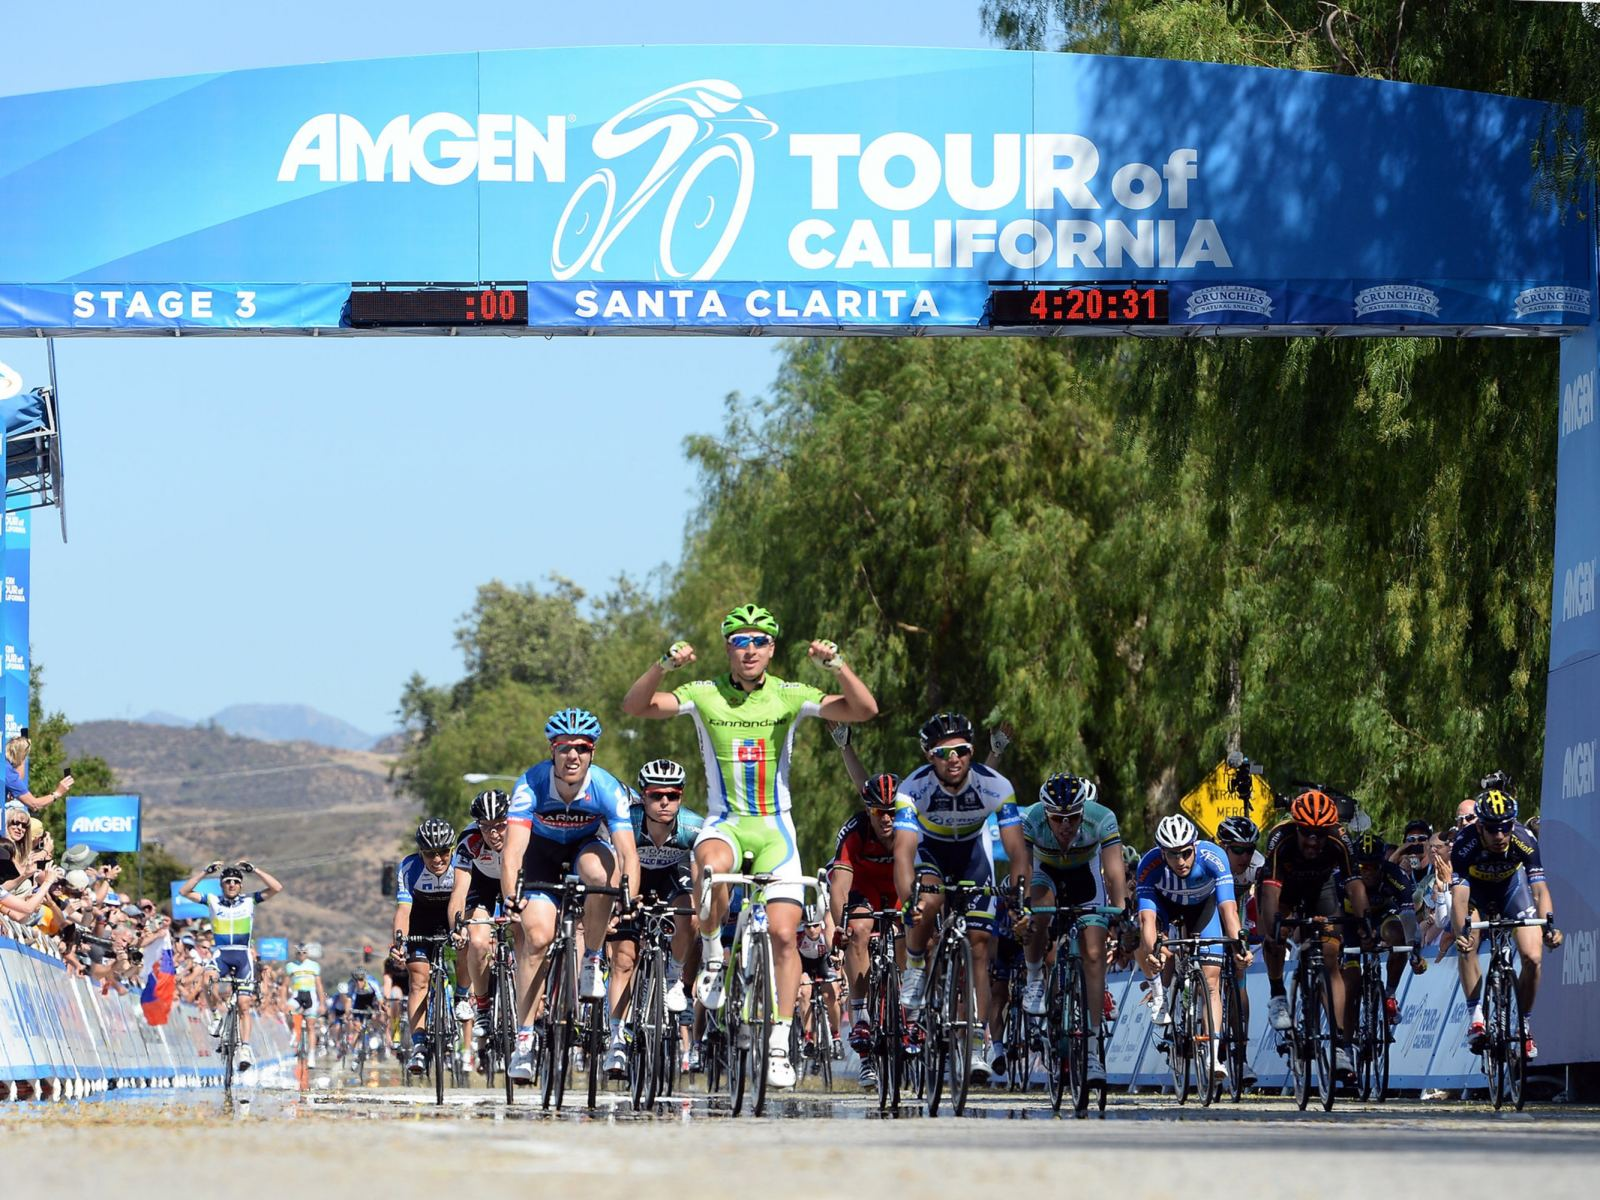 Amgen Tour of CA in Santa Clarita